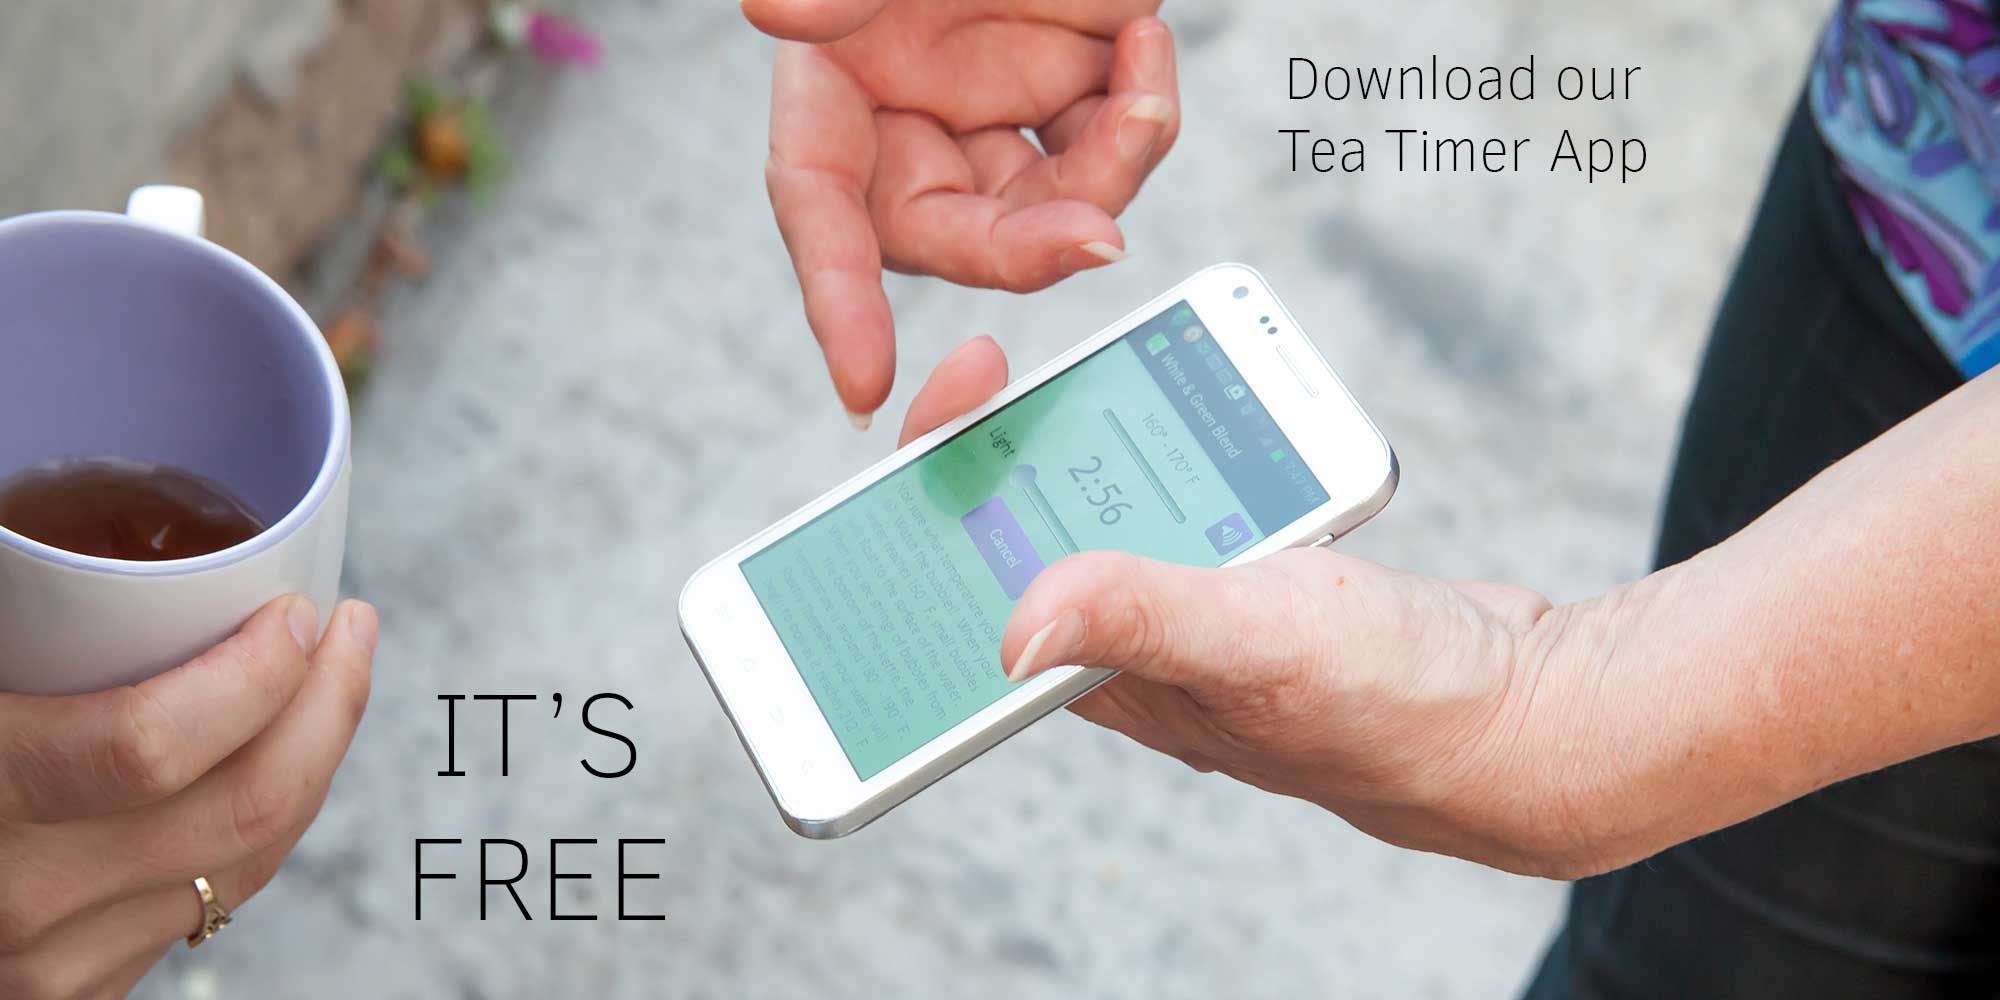 Get the Tealightful Tea Timer app